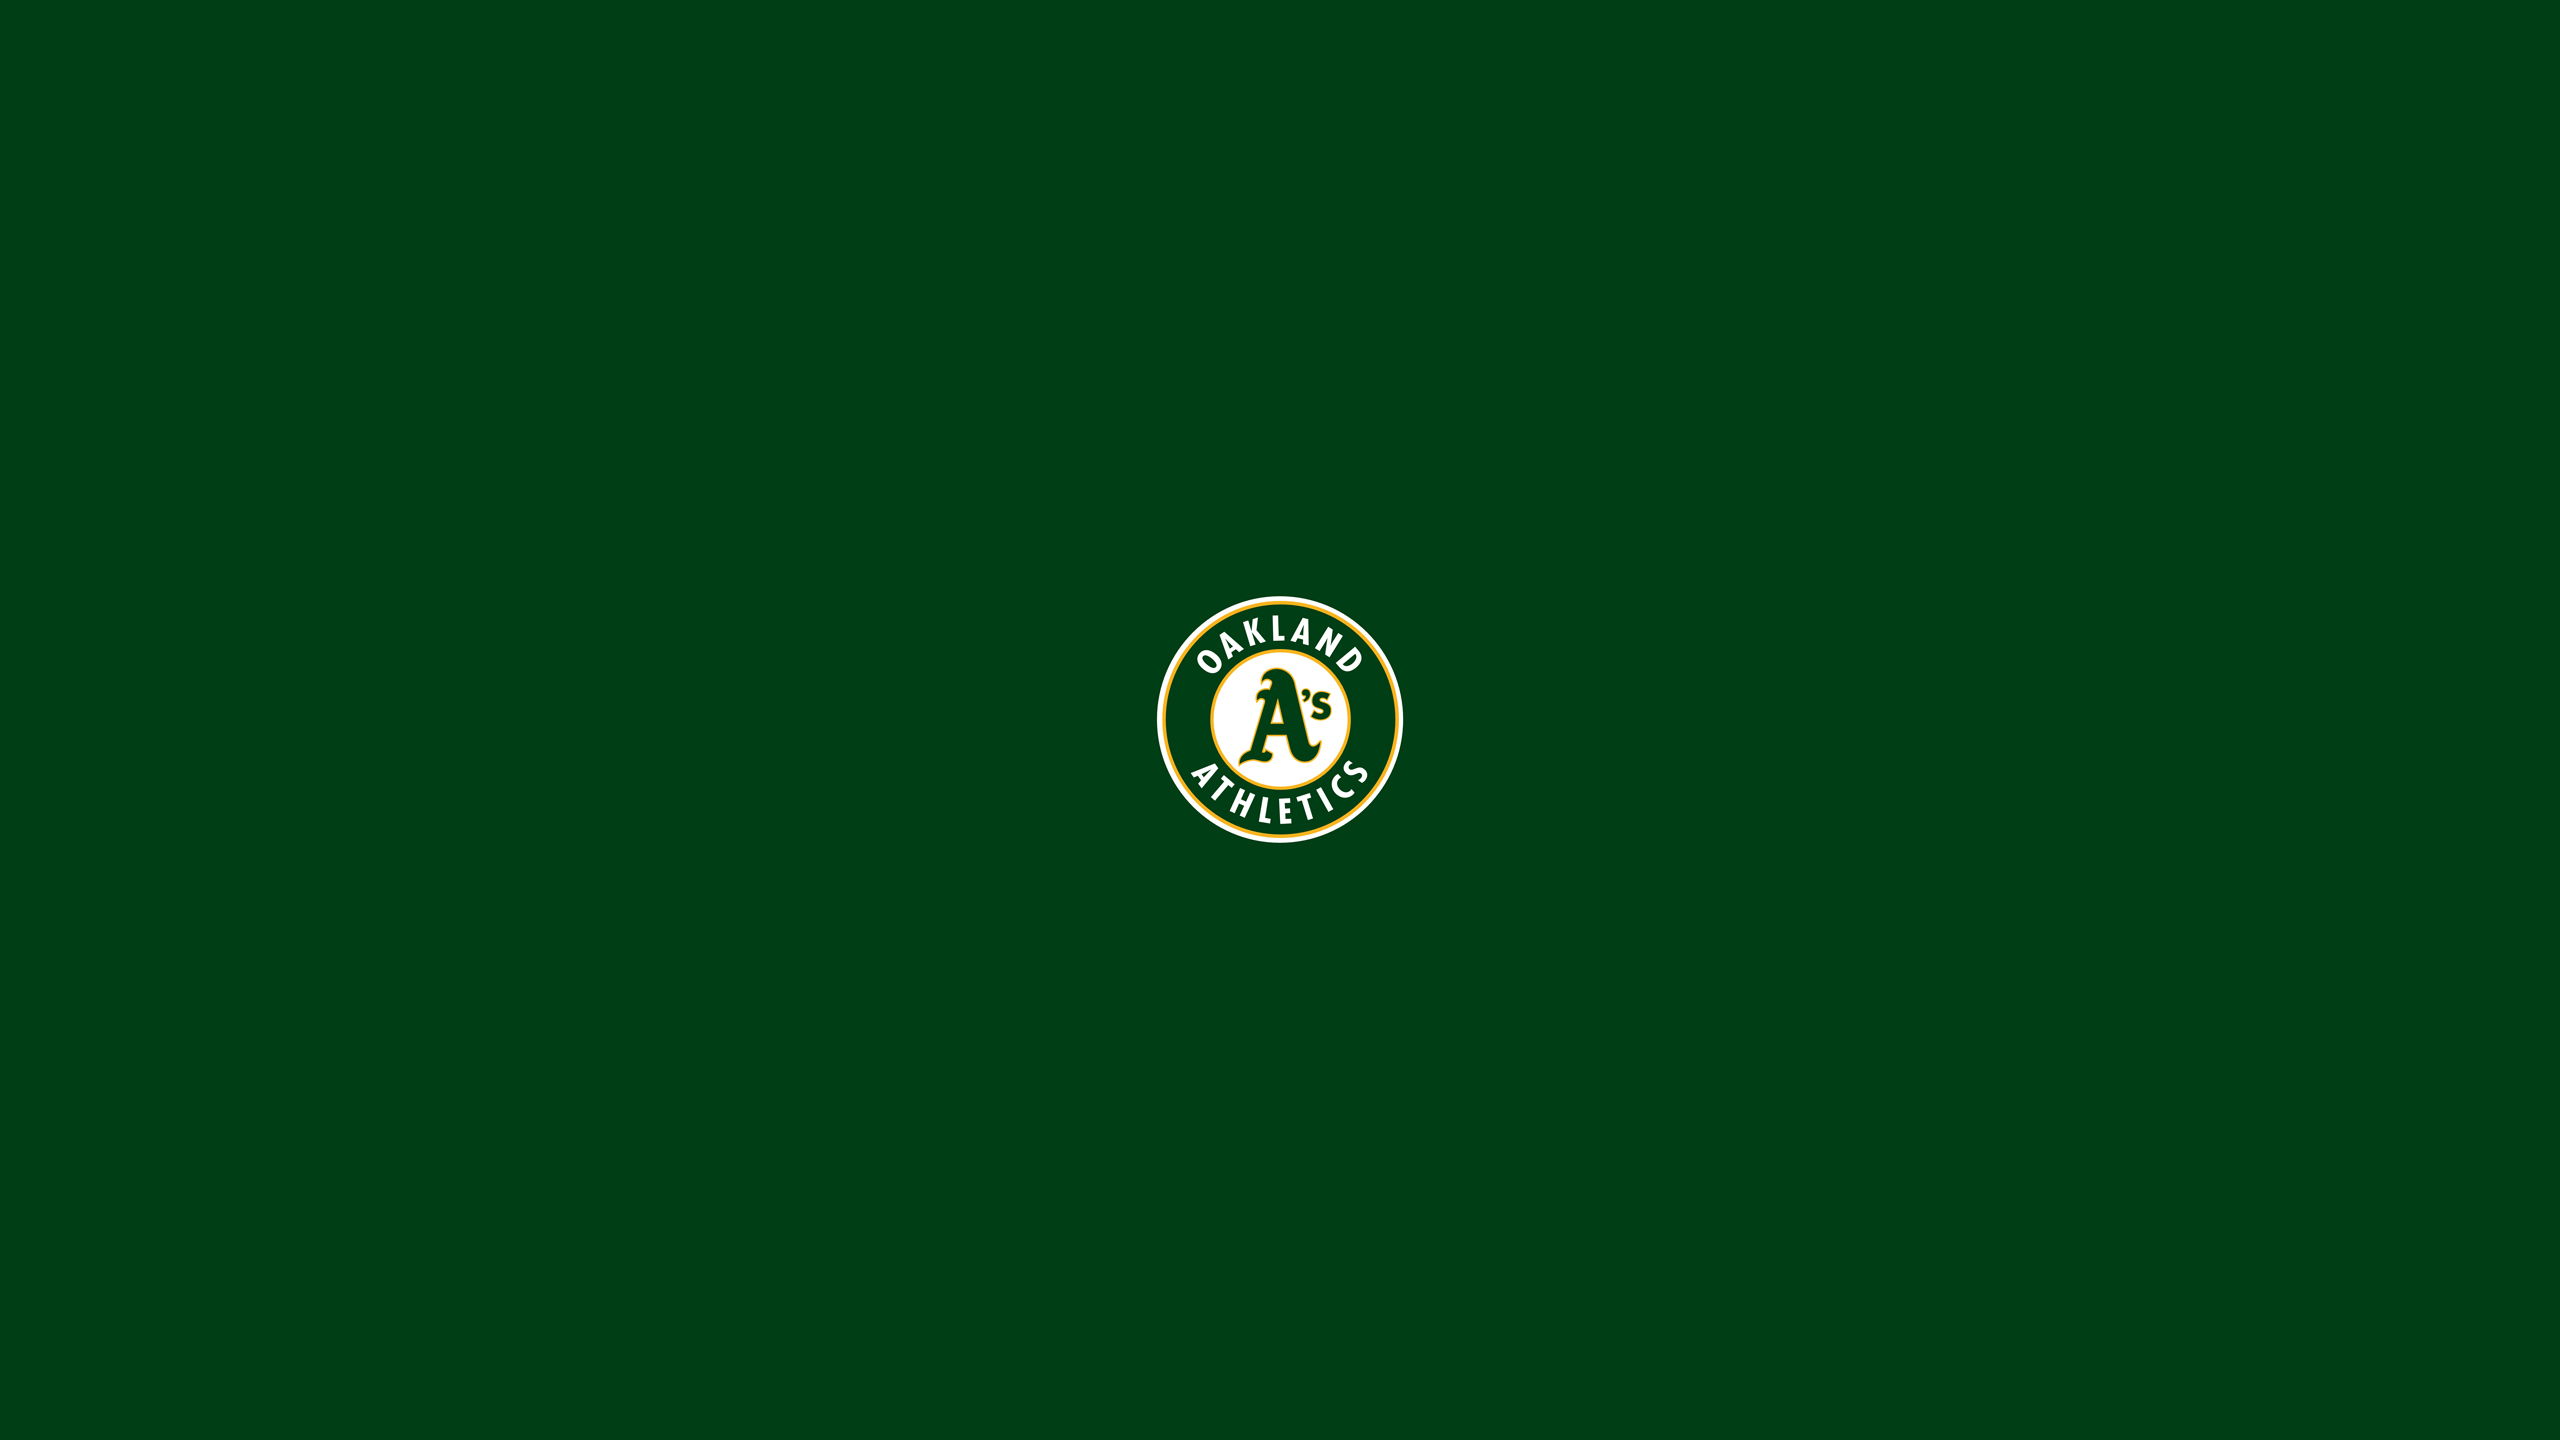 2560x1440 - Oakland Athletics Wallpapers 6